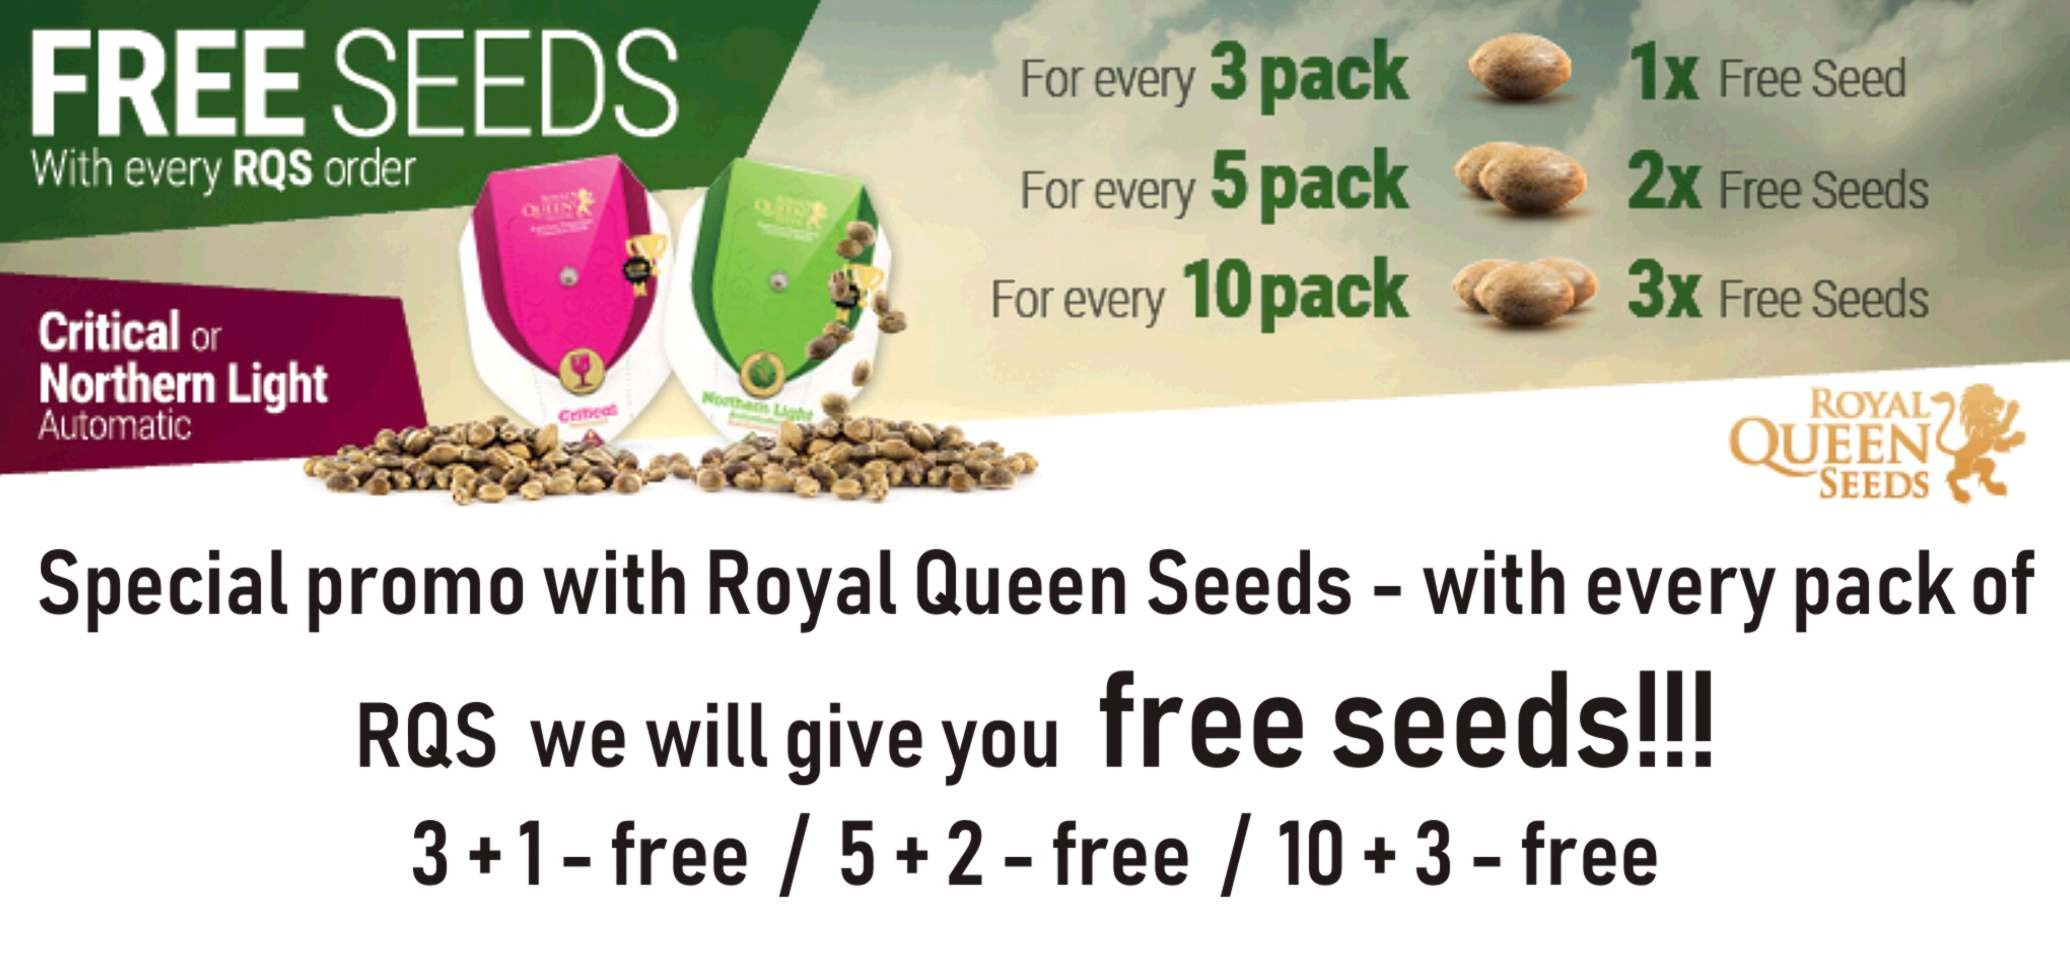 Free cannabis seeds for every Royal Queen Seeds order - Seeds we add for order or in our shop personaly - Prague Letna.